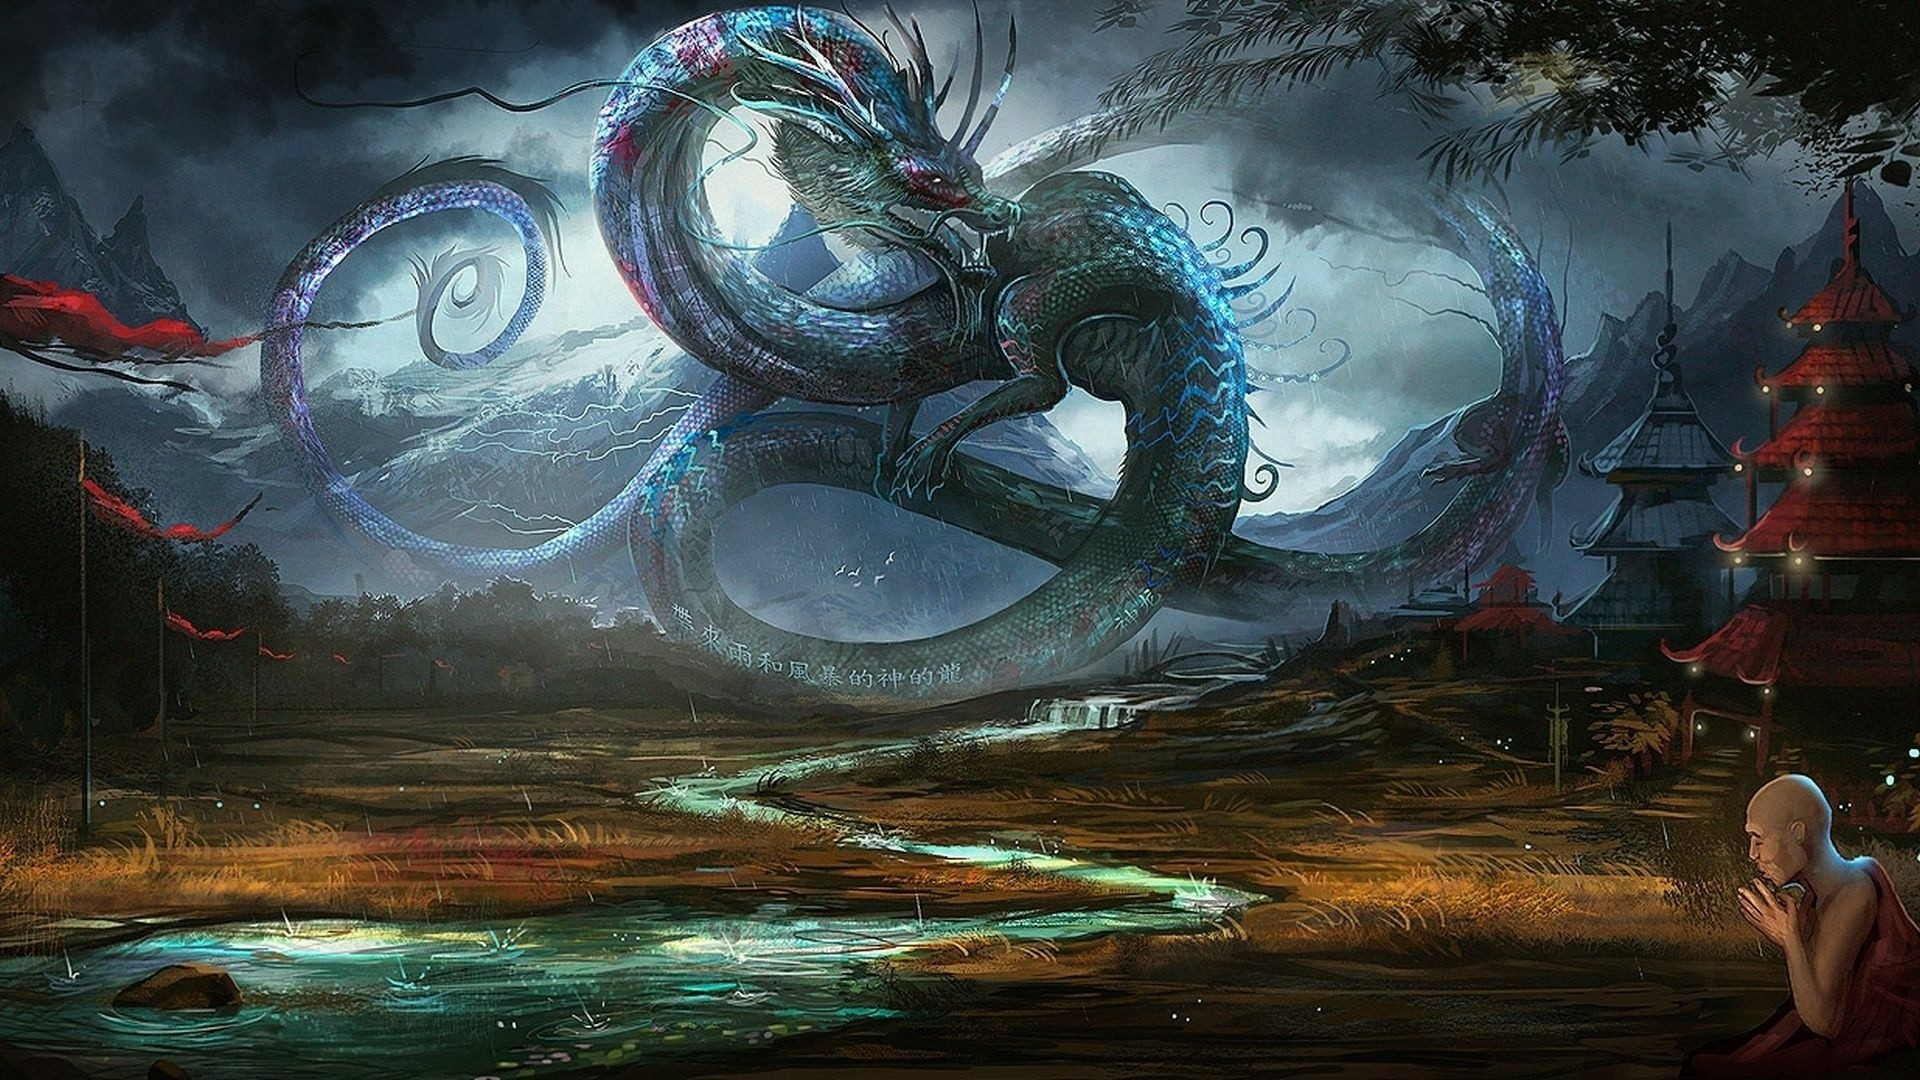 fantasy dragon wallpaper desktop 1